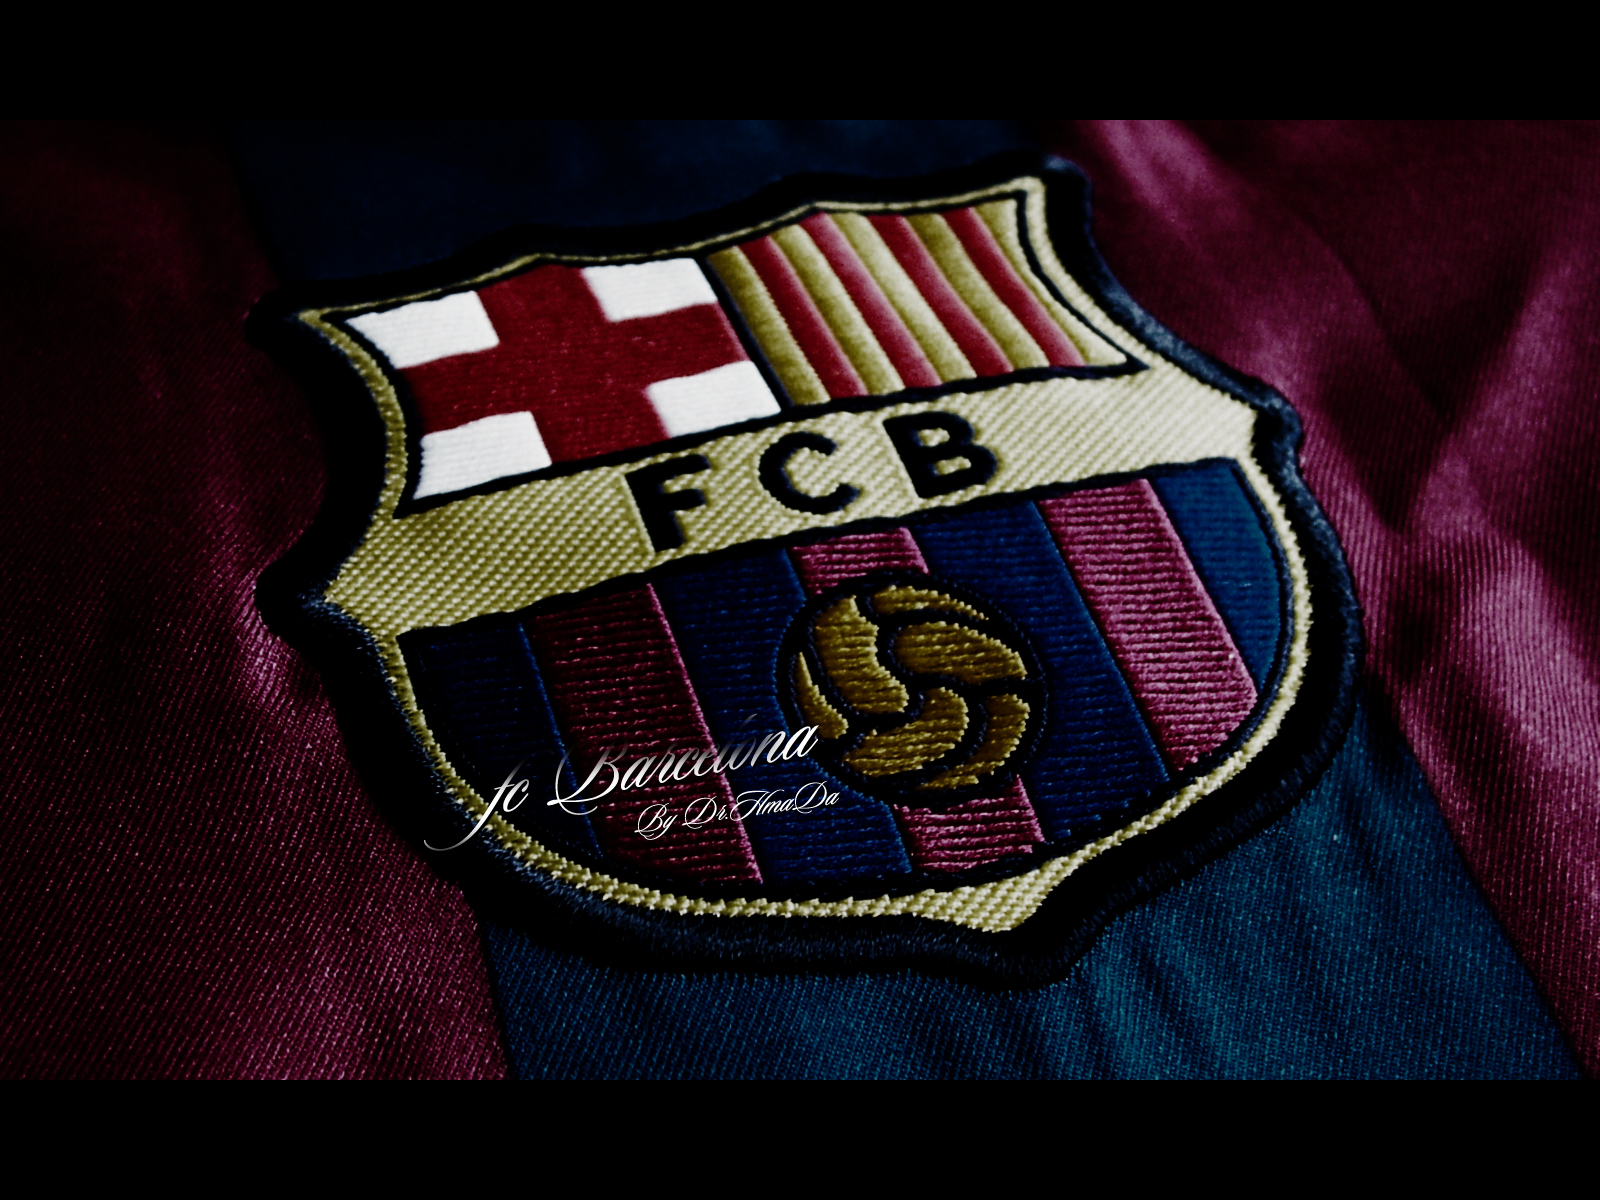 FC Barcelona Background by Dr 7maDa Wallpaper Barcelona